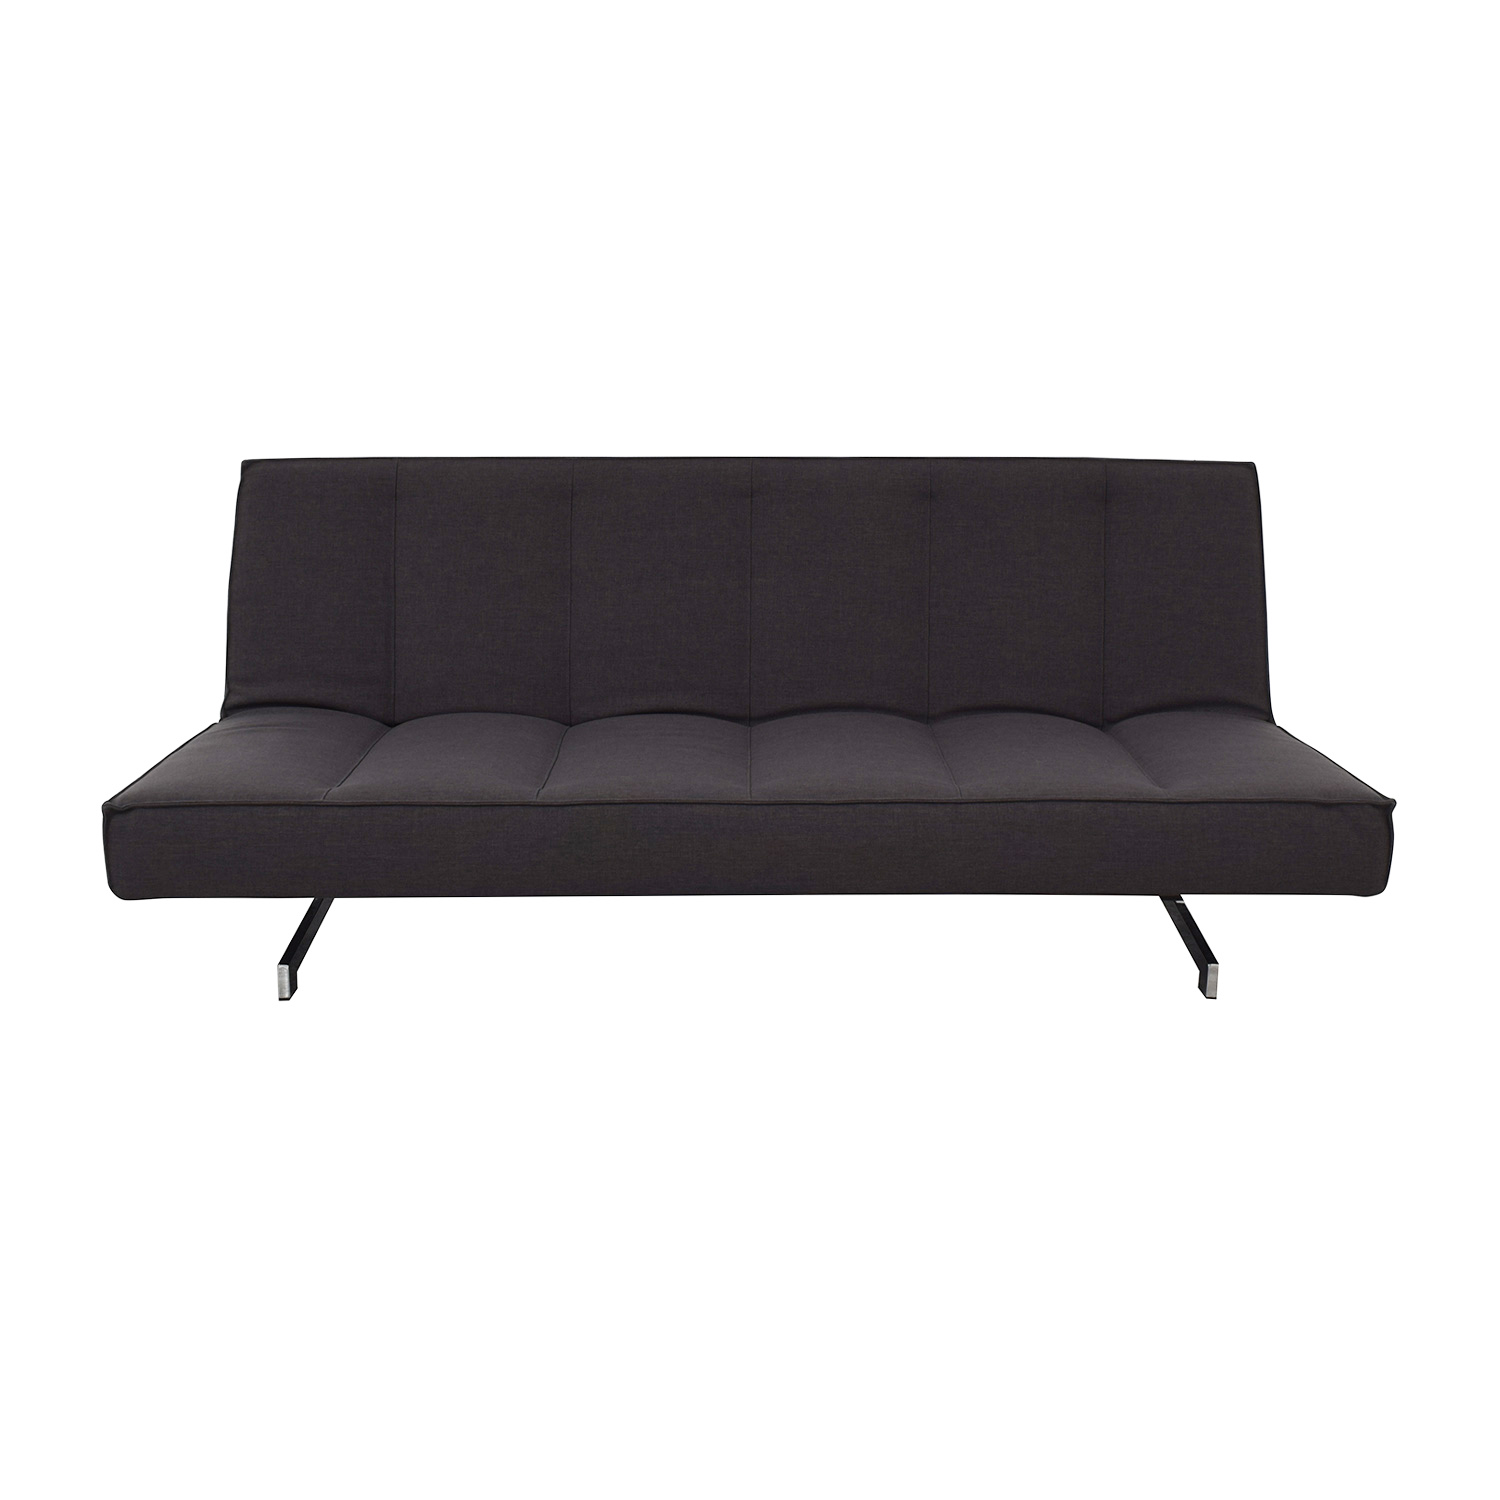 buy CB2 Flex Gravel Sleeper Sofa CB2 Sofas